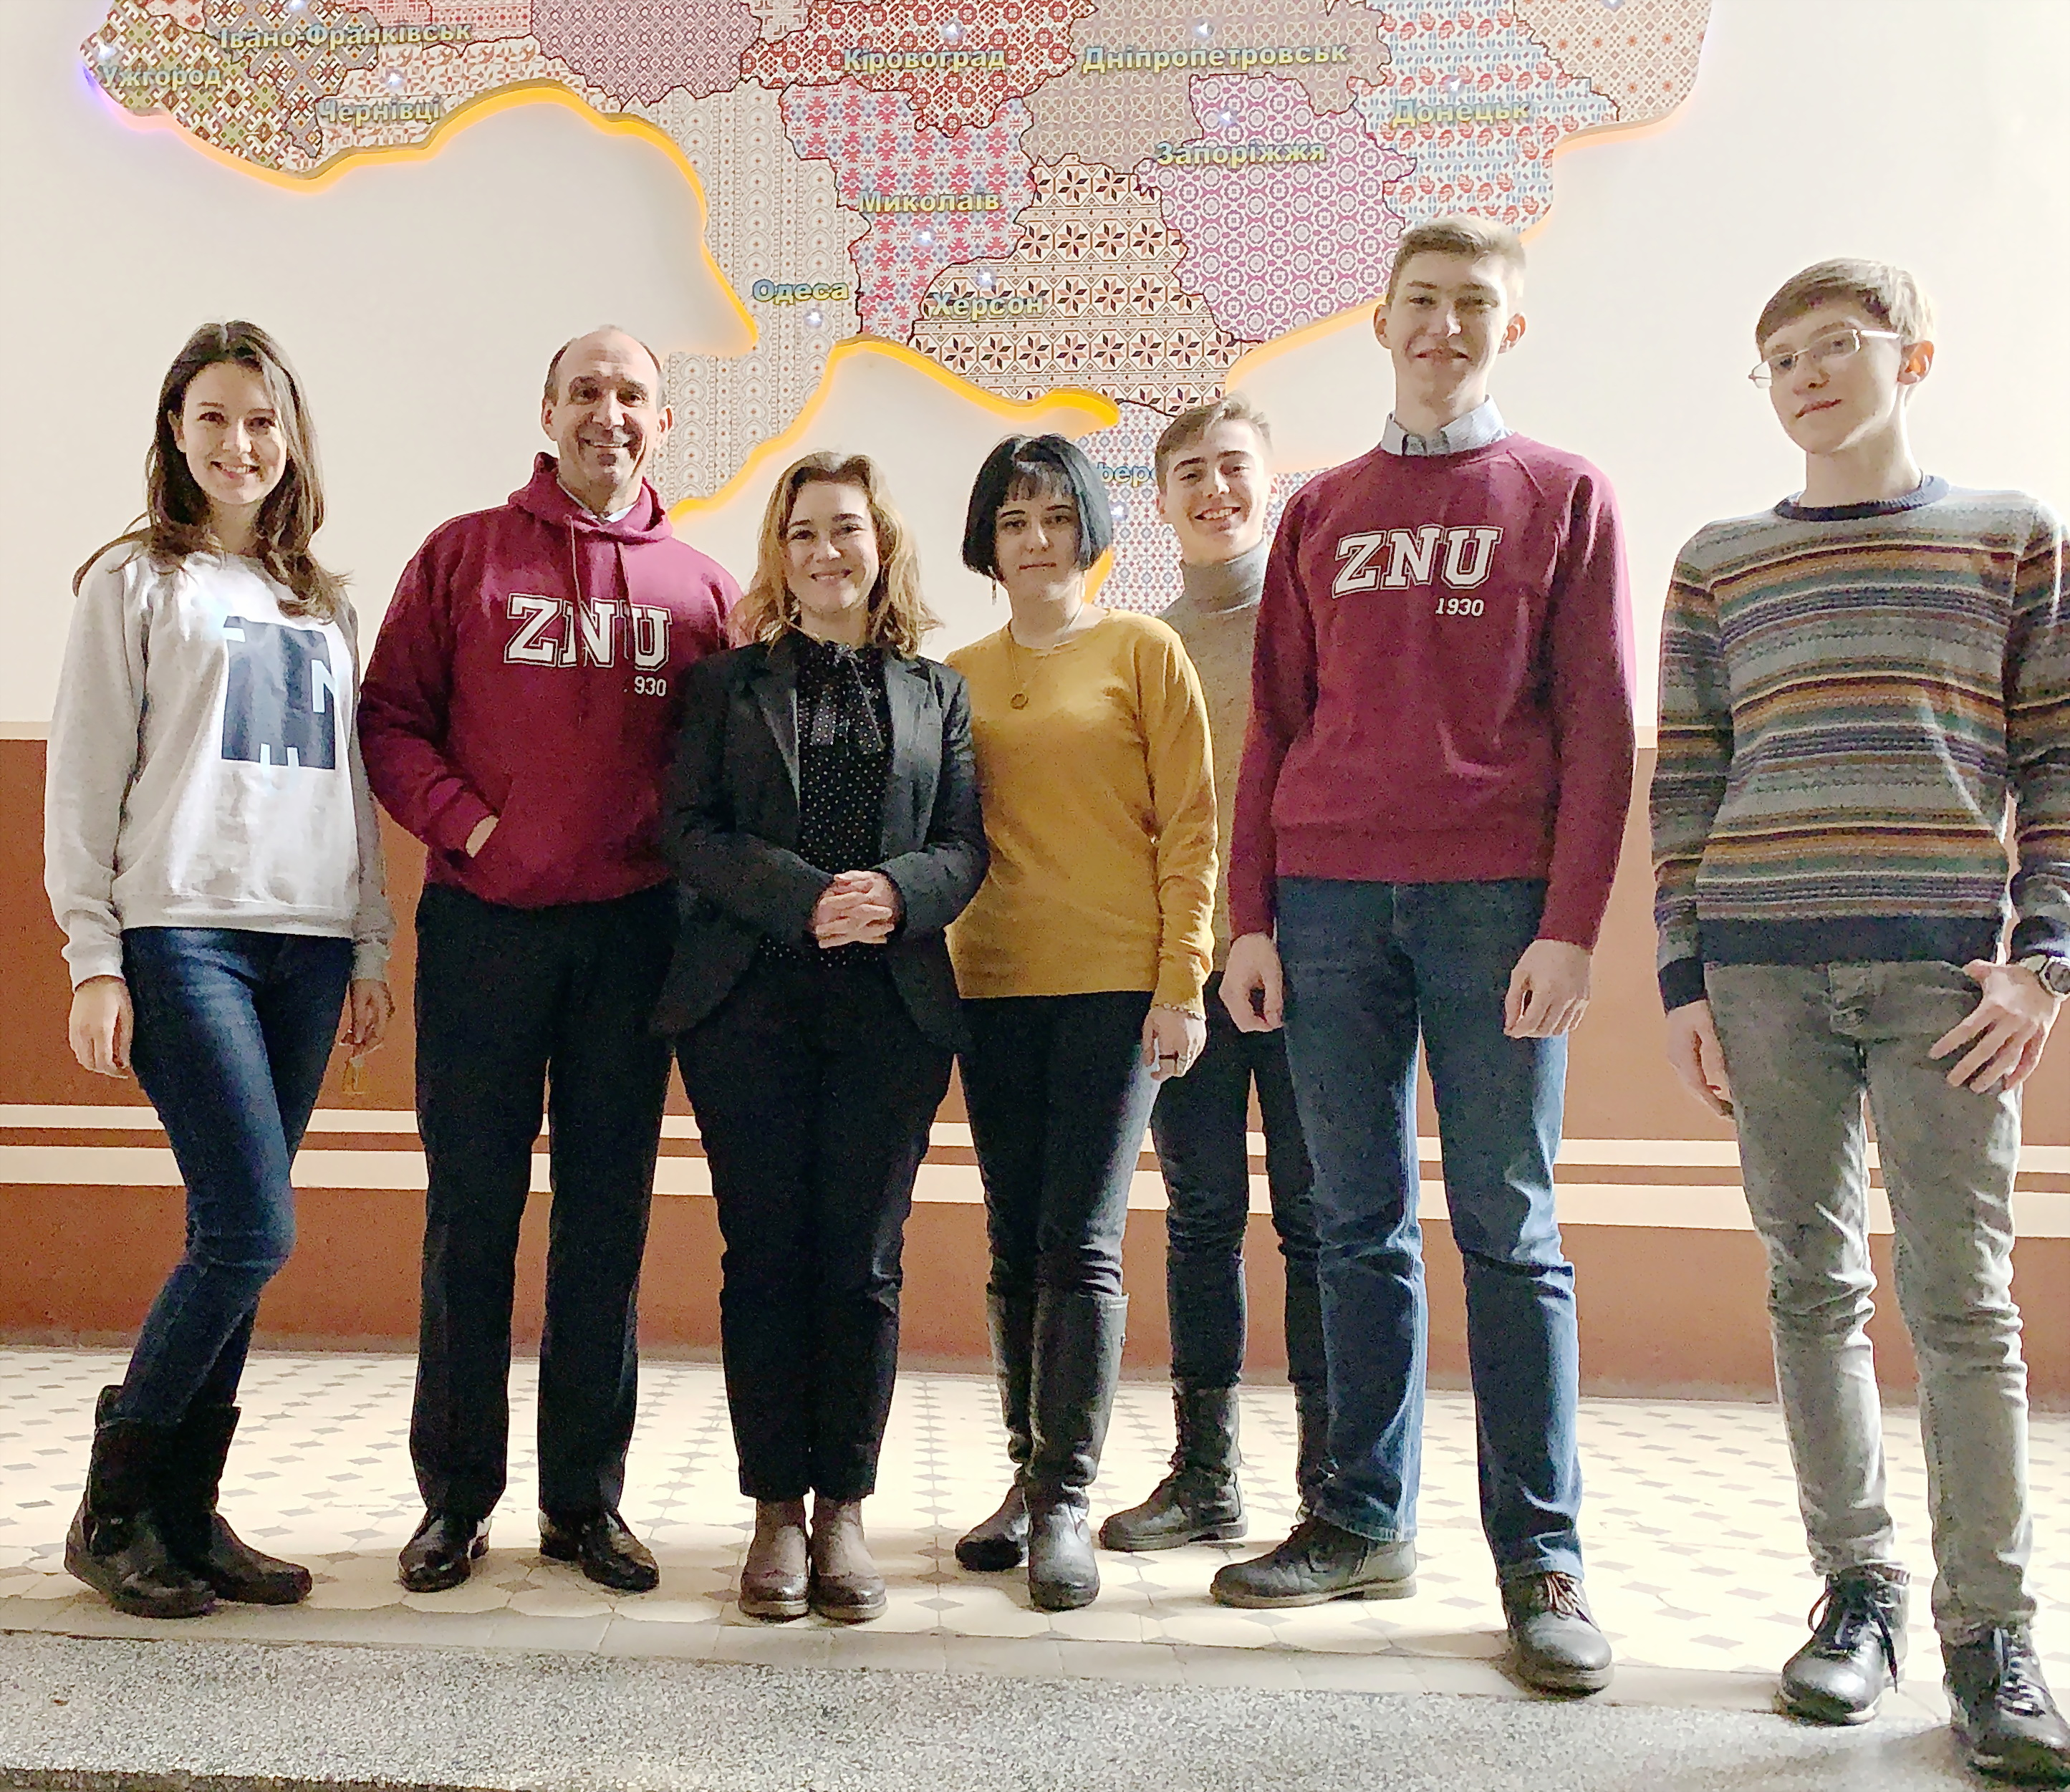 7879eaef3bea9 The project of the formation of academic integrity in school was presented  in Zaporizhzhia National University